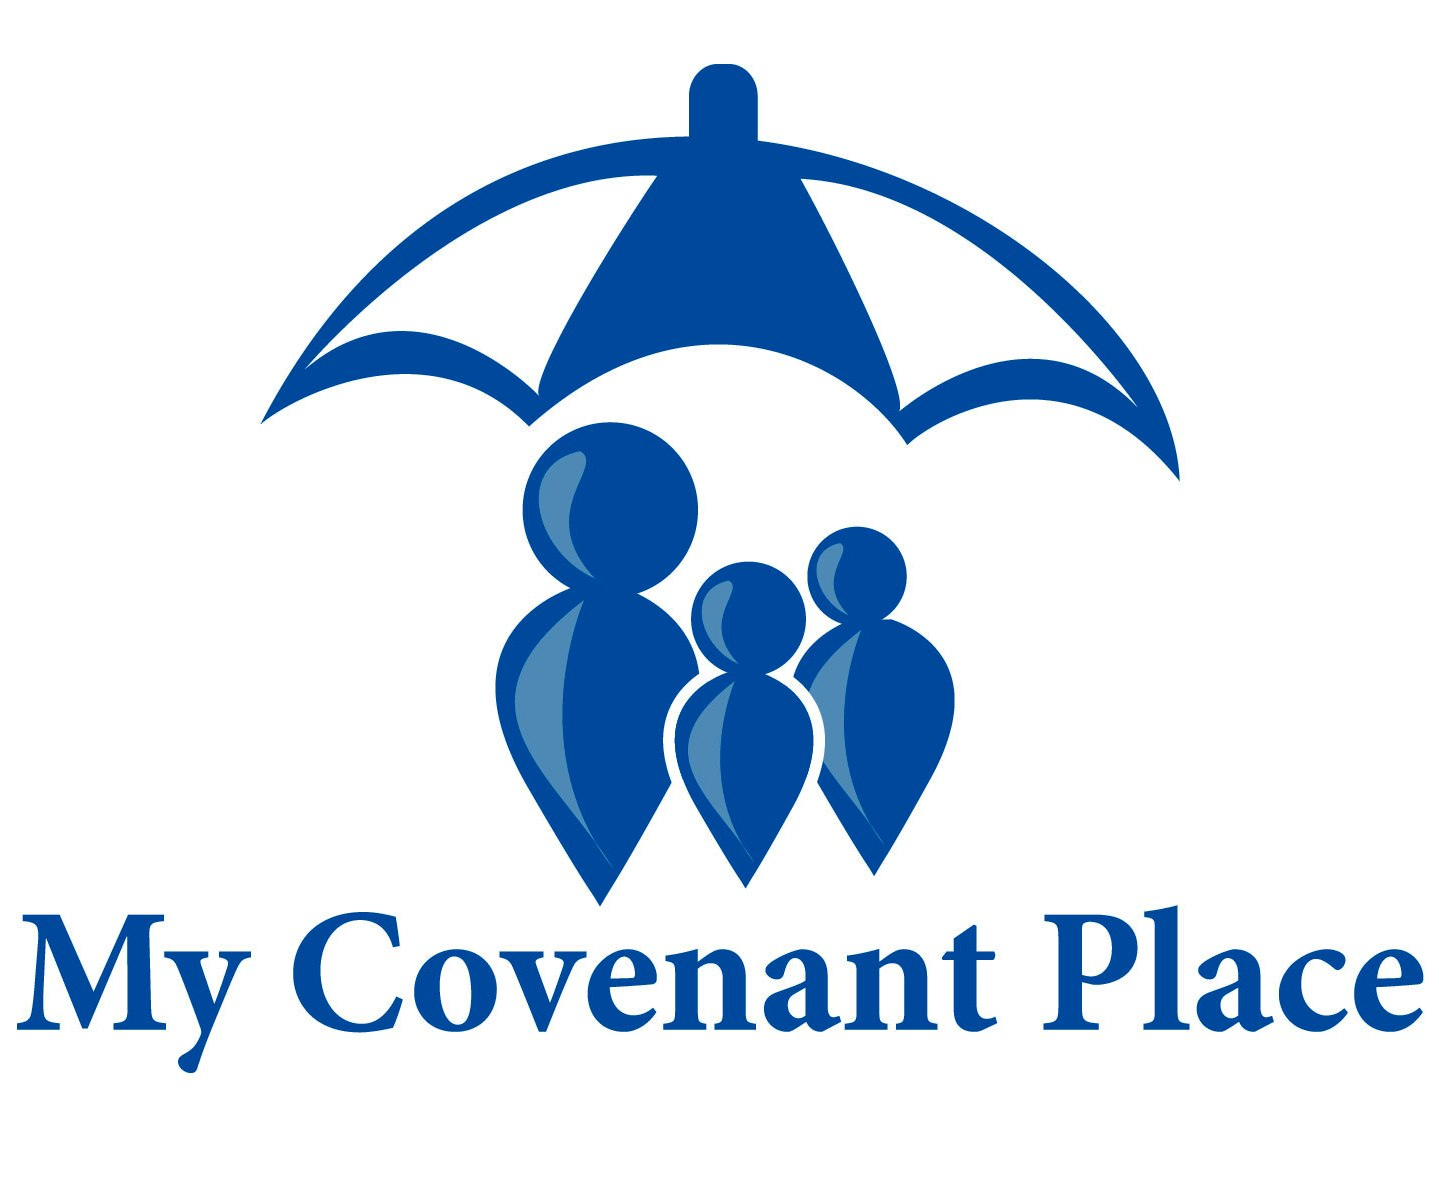 My Covenant Place Expands Their Service To Accommodate The Needs of Families and Communities